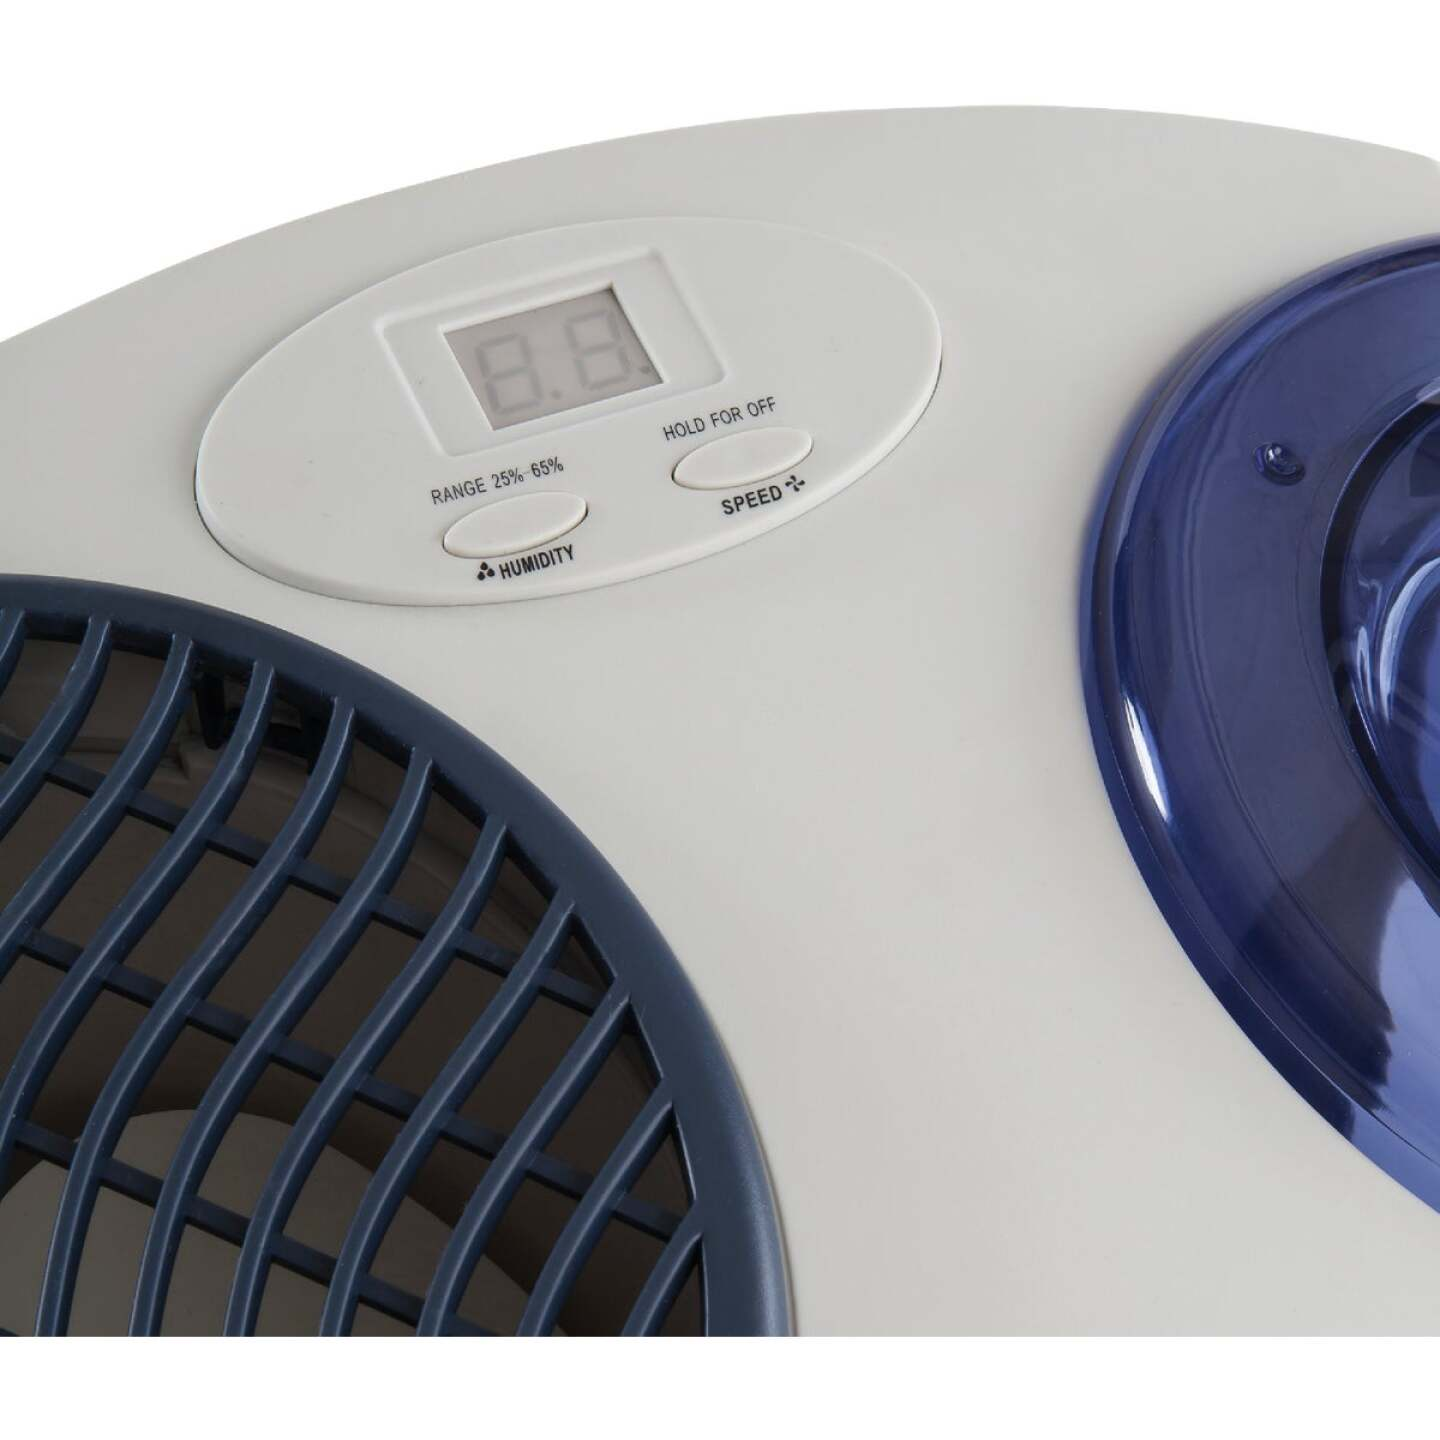 AirCare 2 Gal. Capacity 1000 Sq. Ft. Tabletop Evaporative Humidifier Image 2